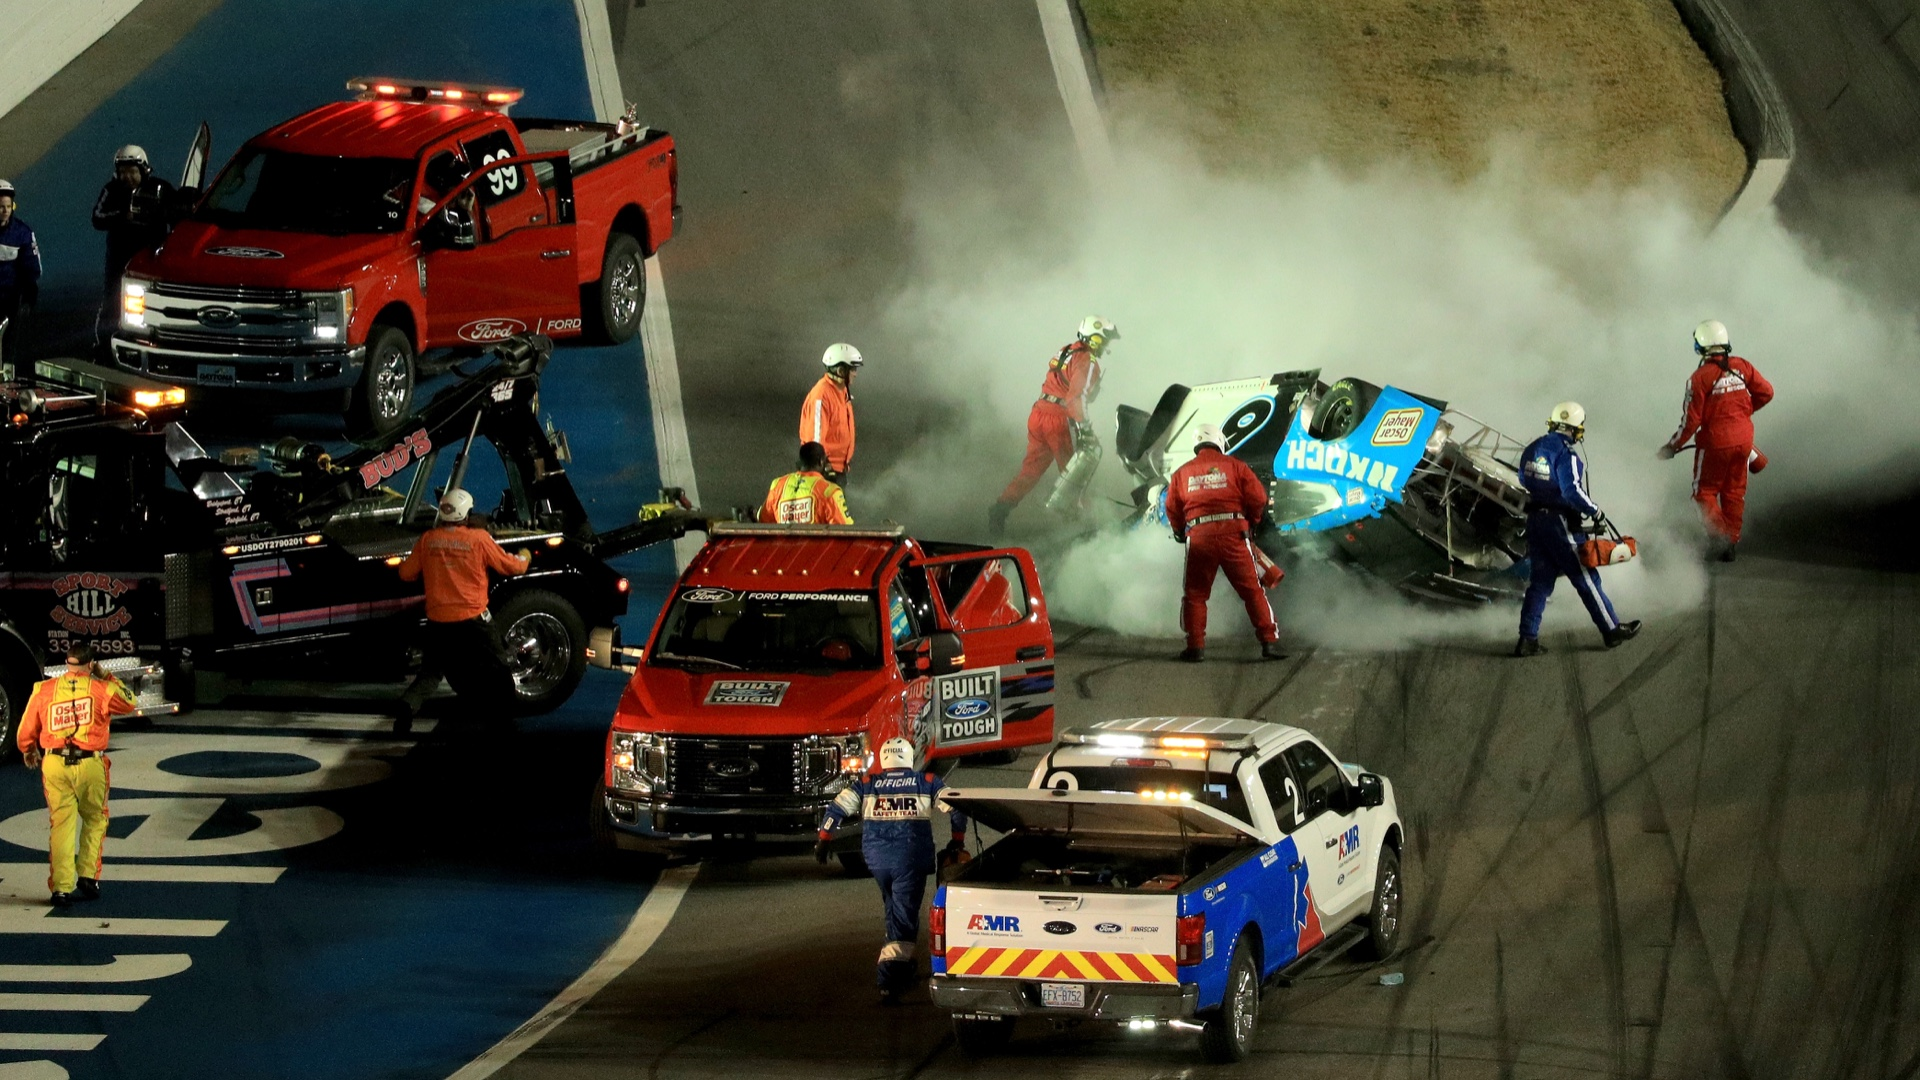 Ryan Newman transported to hospital after crash at end of Daytona 500